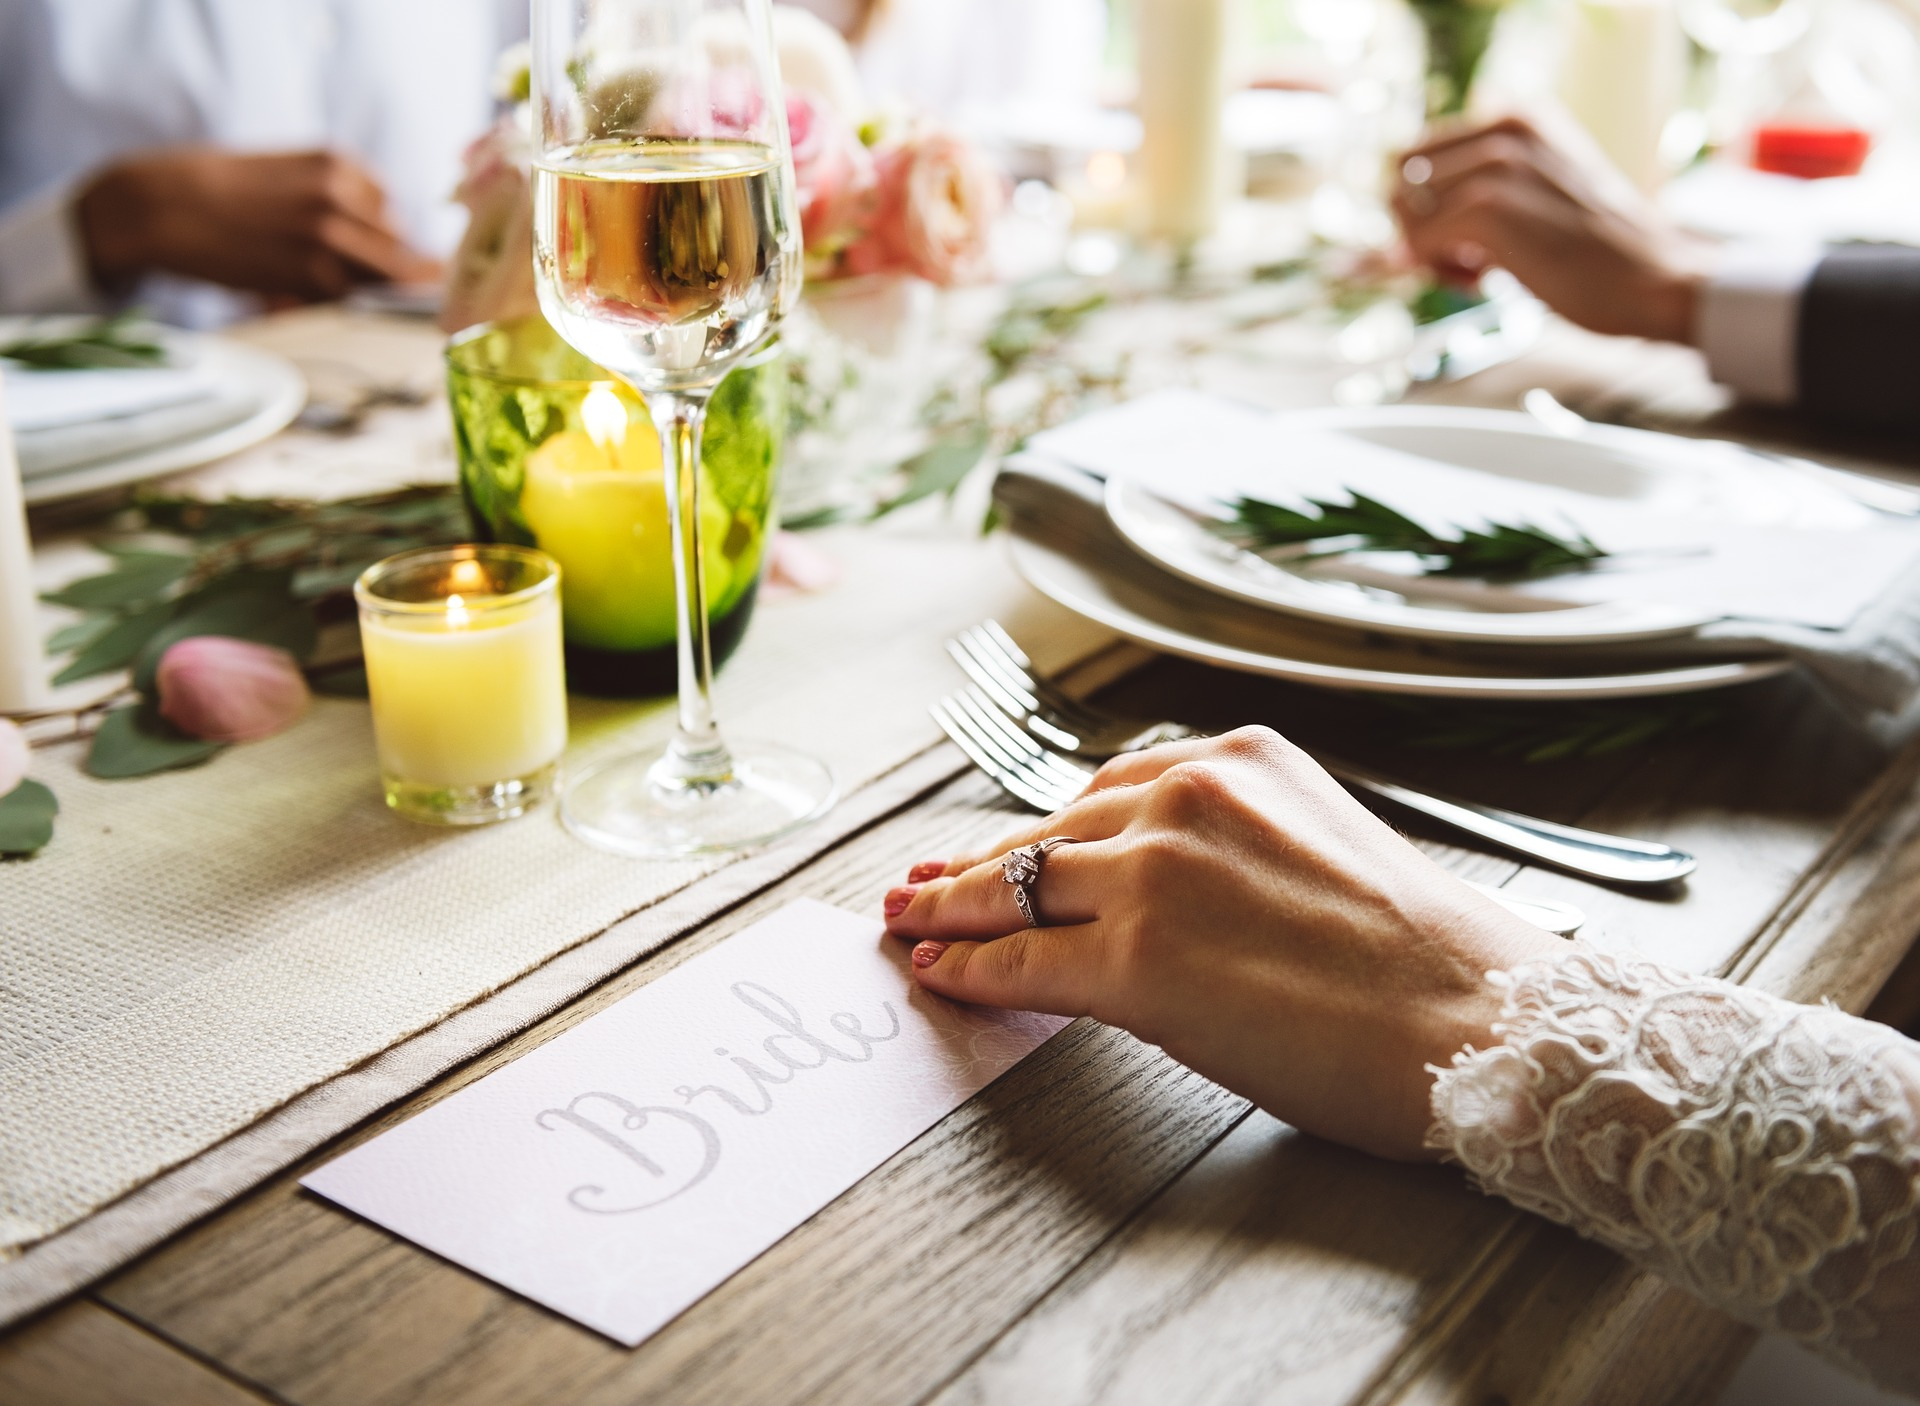 """part of table at wedding reception showing """"bride"""" place and her hand as well as plates, wine glass, and candle"""